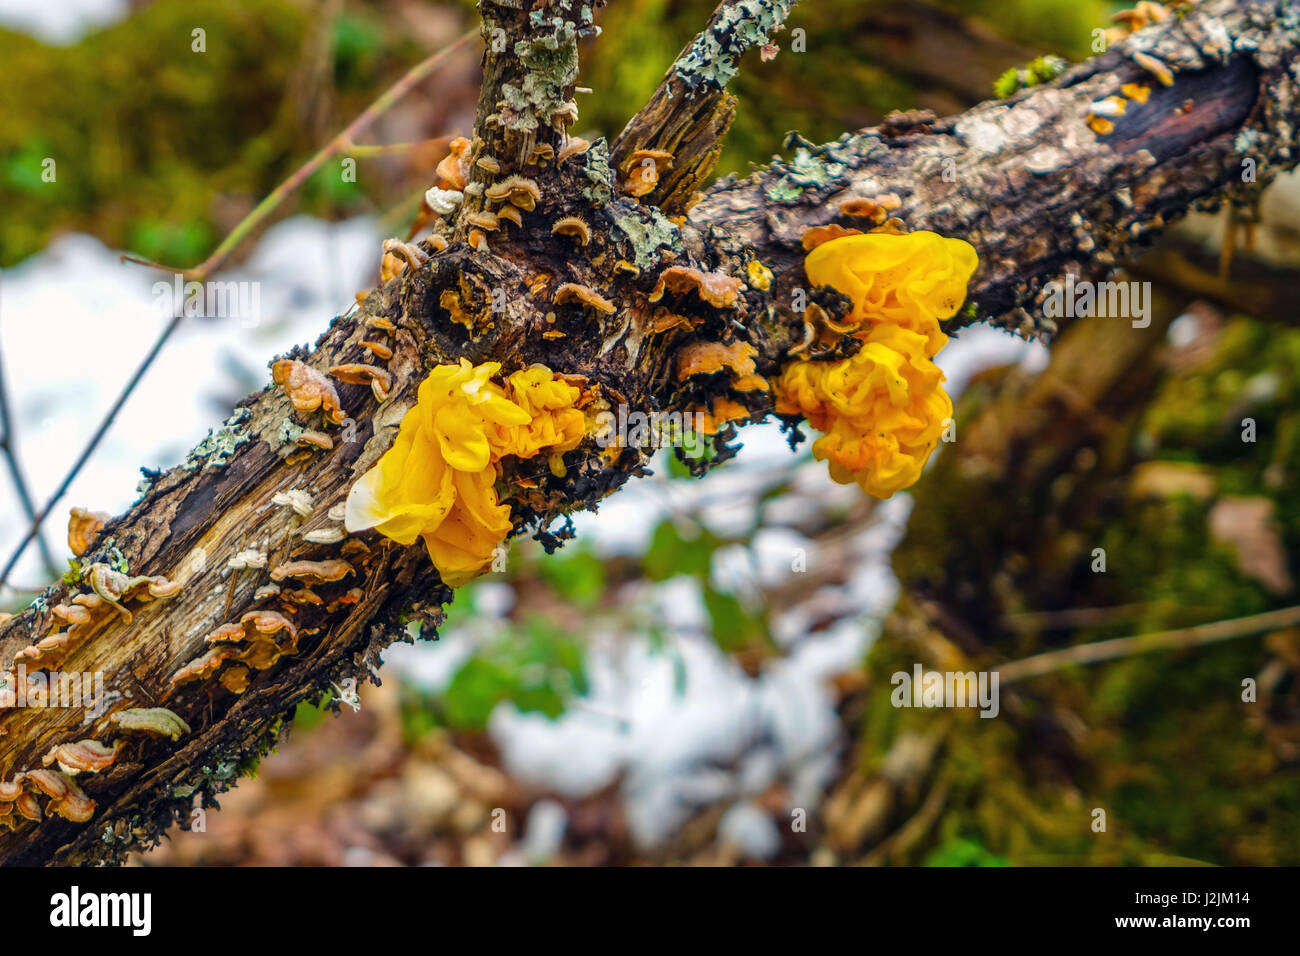 Yellow Brain Fungus growing on tree branch, French Pyrenees - Stock Image